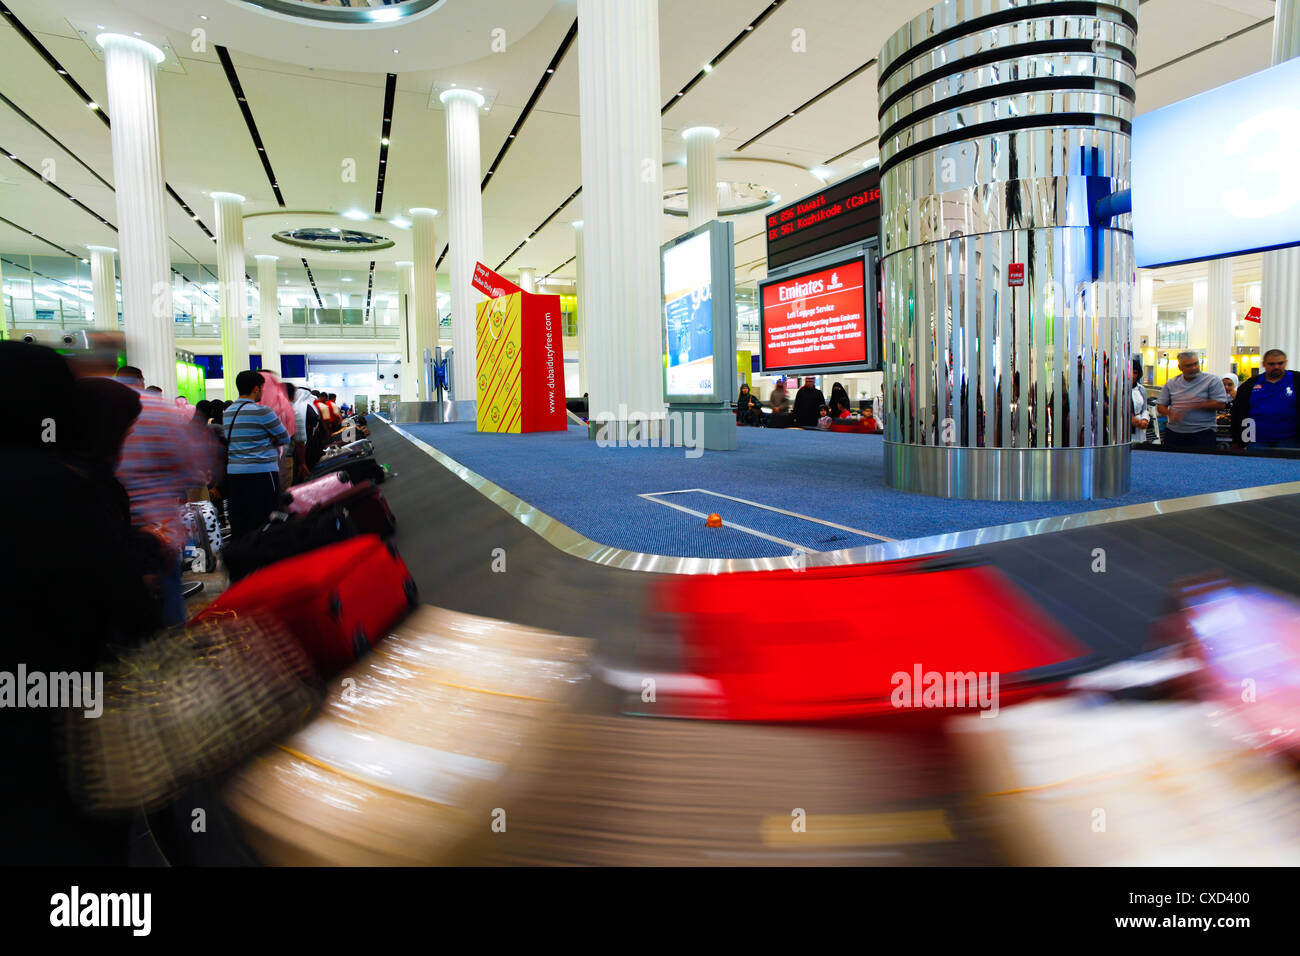 Baggage Carousel in the Arrivals Hall, Terminal 3, Dubai International Airport, Dubai, United Arab Emirates, Middle - Stock Image